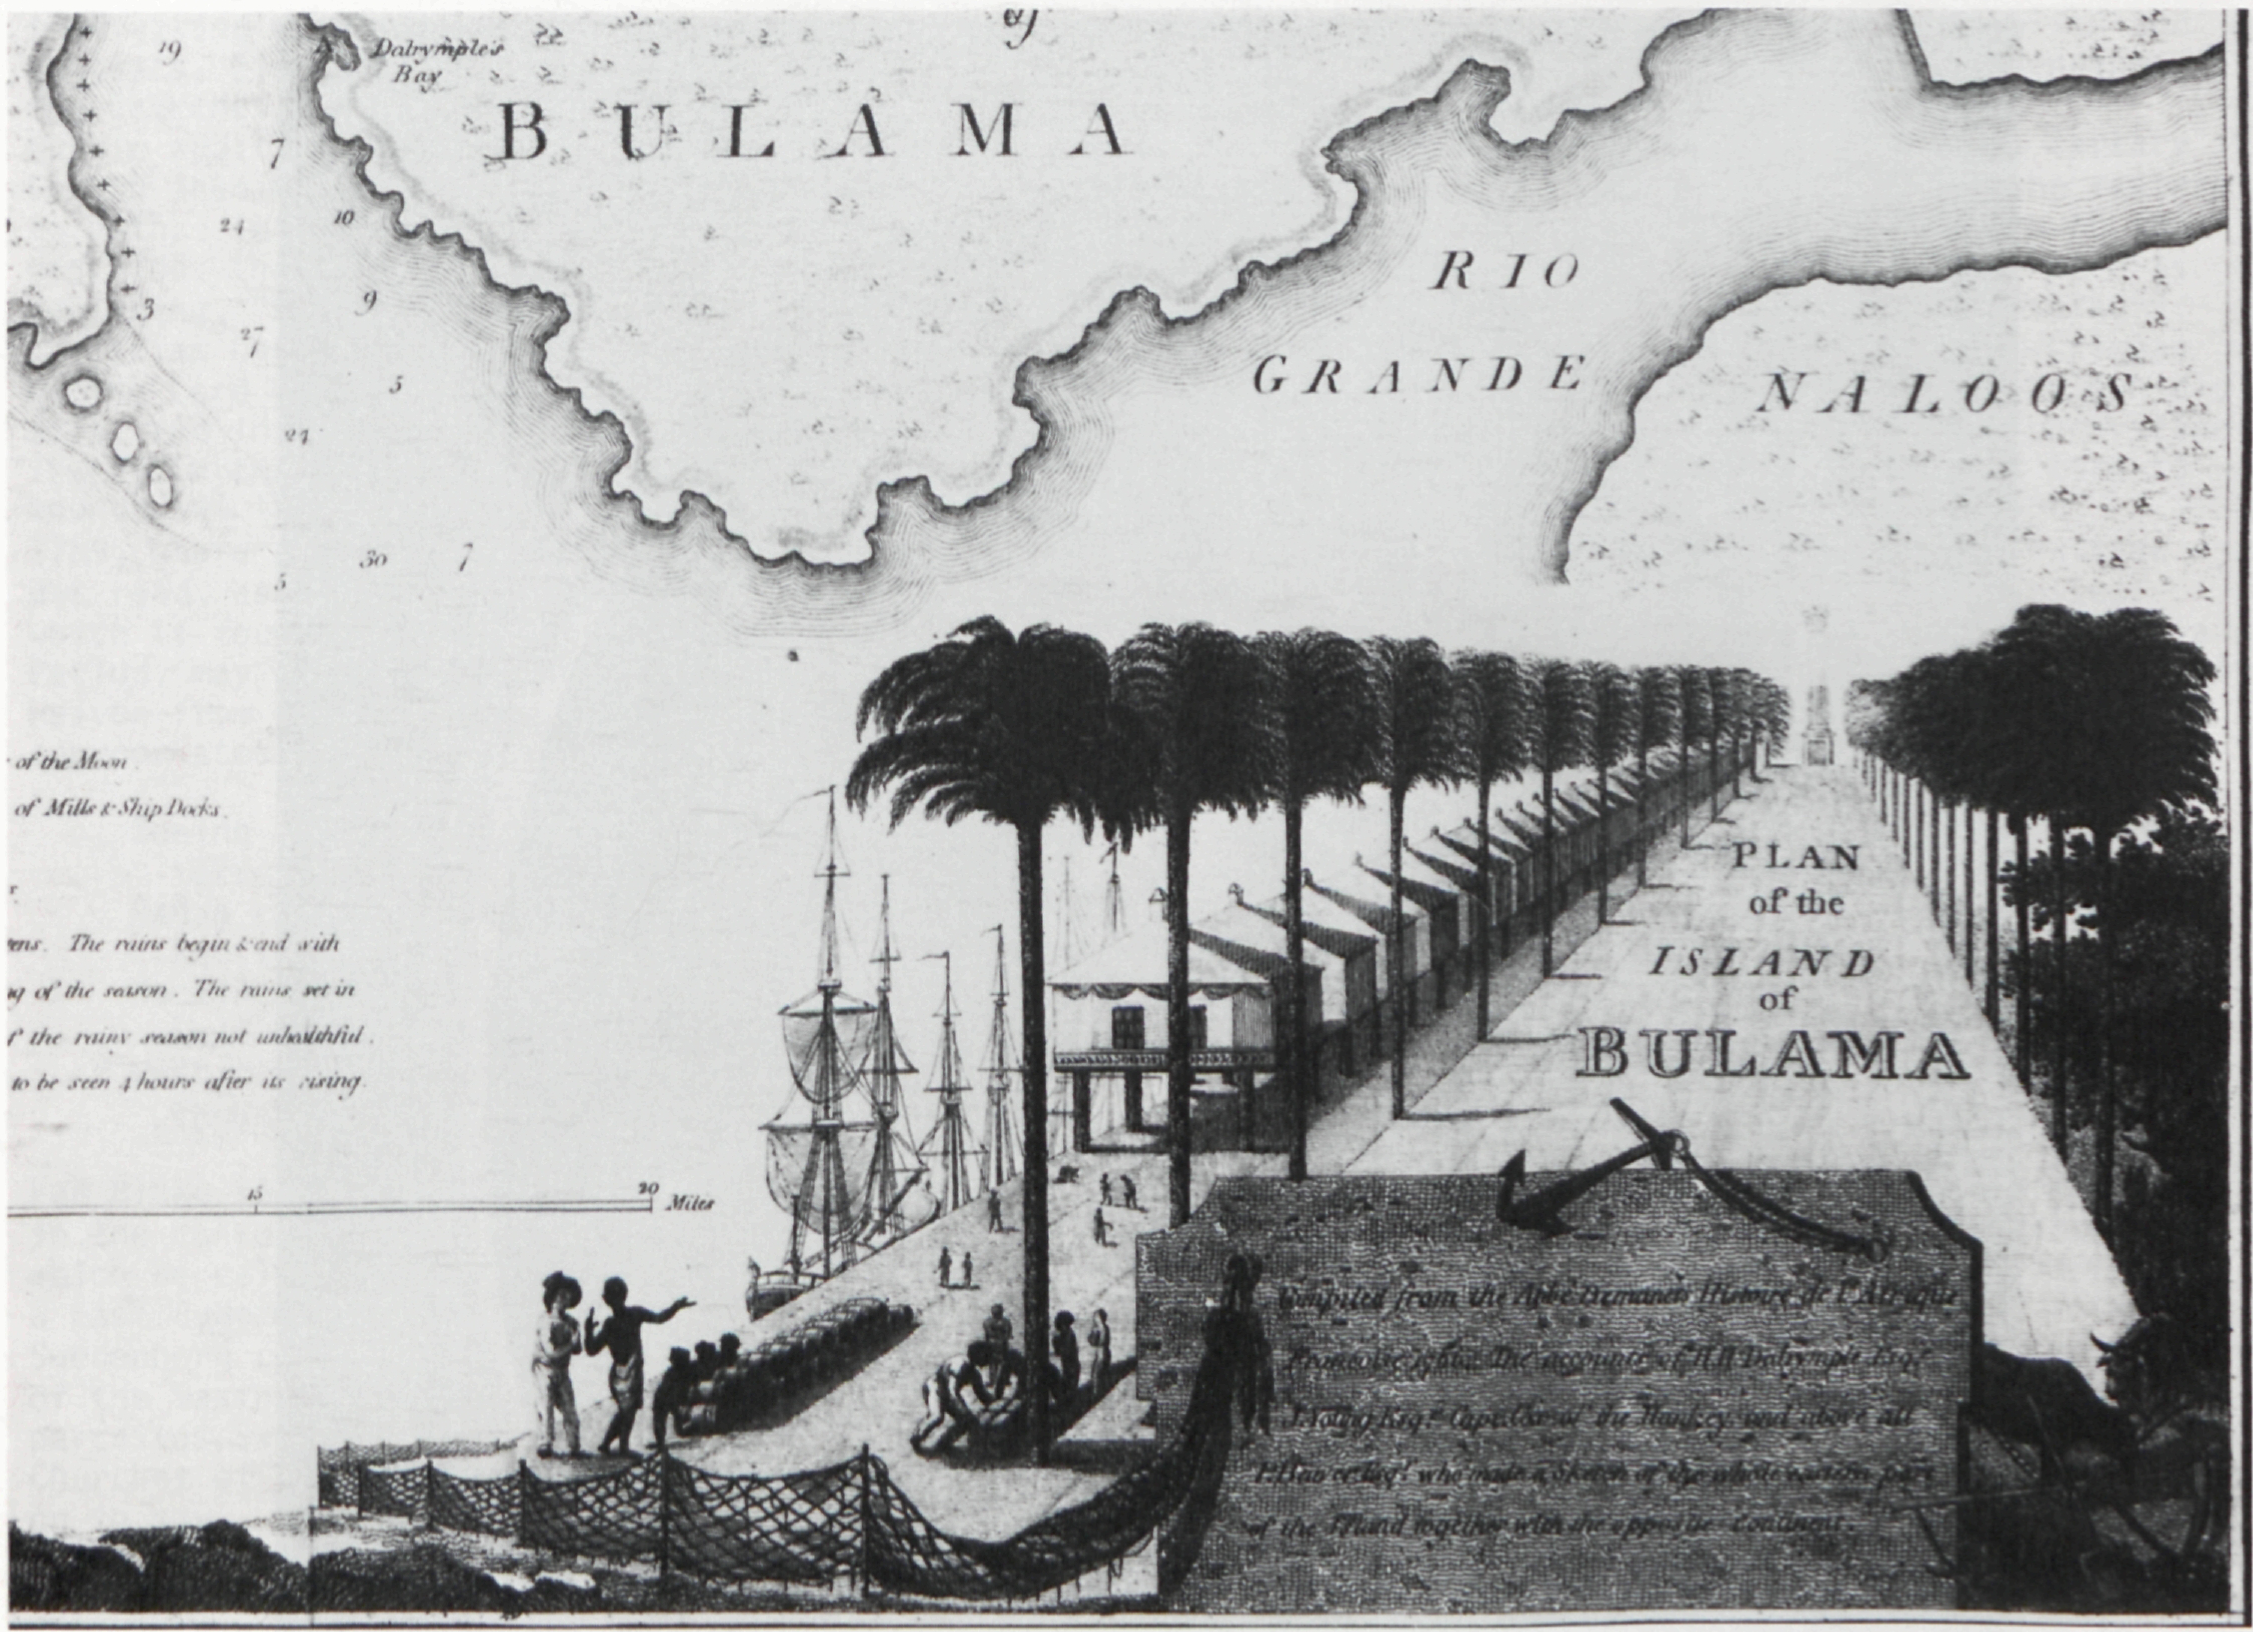 Essay Writing Topics For High School Students  Plan Of The Island Of Bulama Detail Plate Iii Of An Essay On  Colonization By C B Wadstrm London  Reproduced By Permission  Of The Royal  My English Essay also Paper Essay A New Heaven Is Begun William Blake And Swedenborgianism  Morton  High School Essay Writing